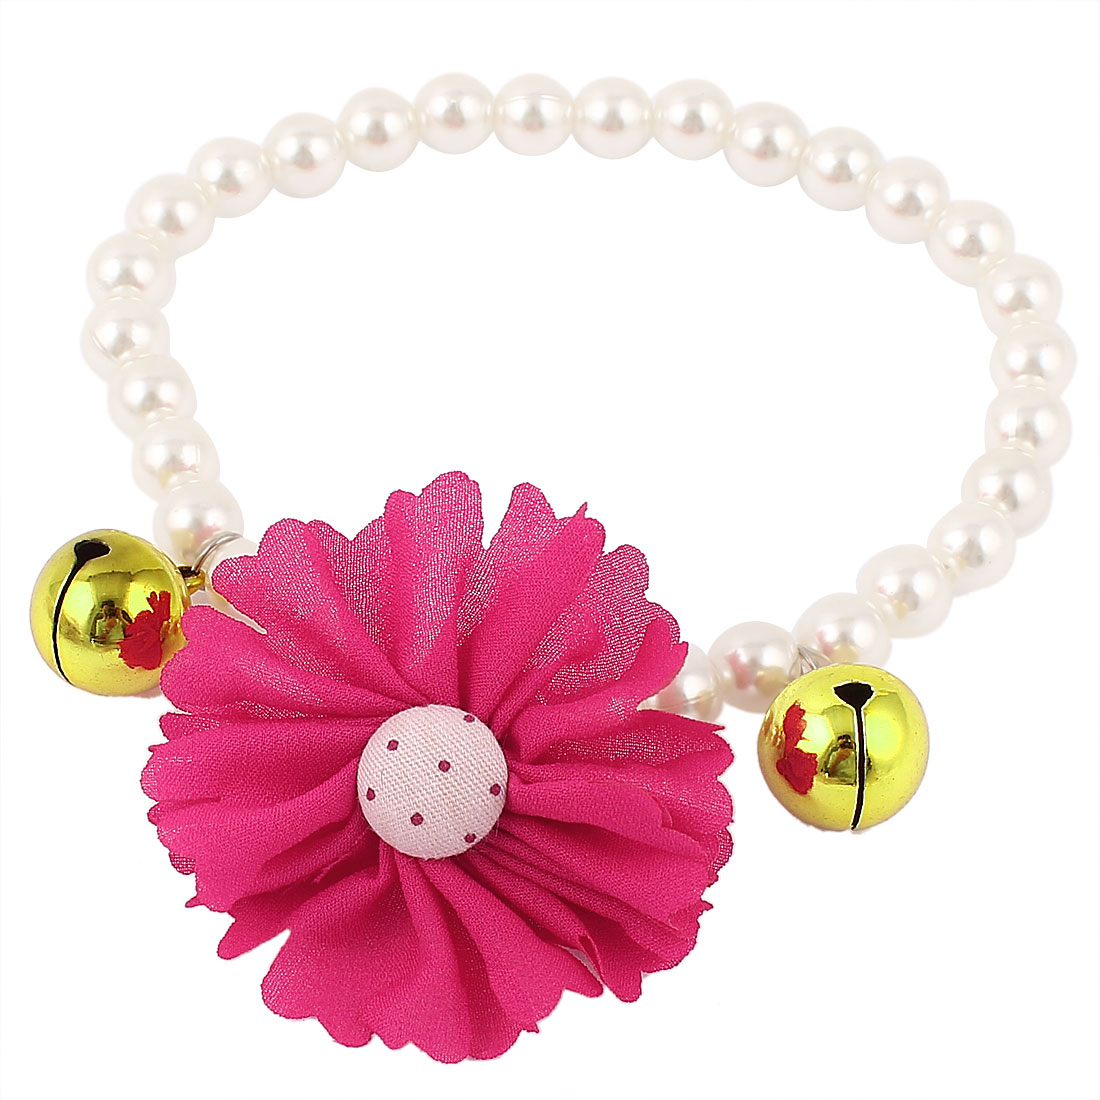 Metal Bell Pendant Flower Accent Pet Dog Plastic Beads Pearls Collar Necklace White Fuchsia M